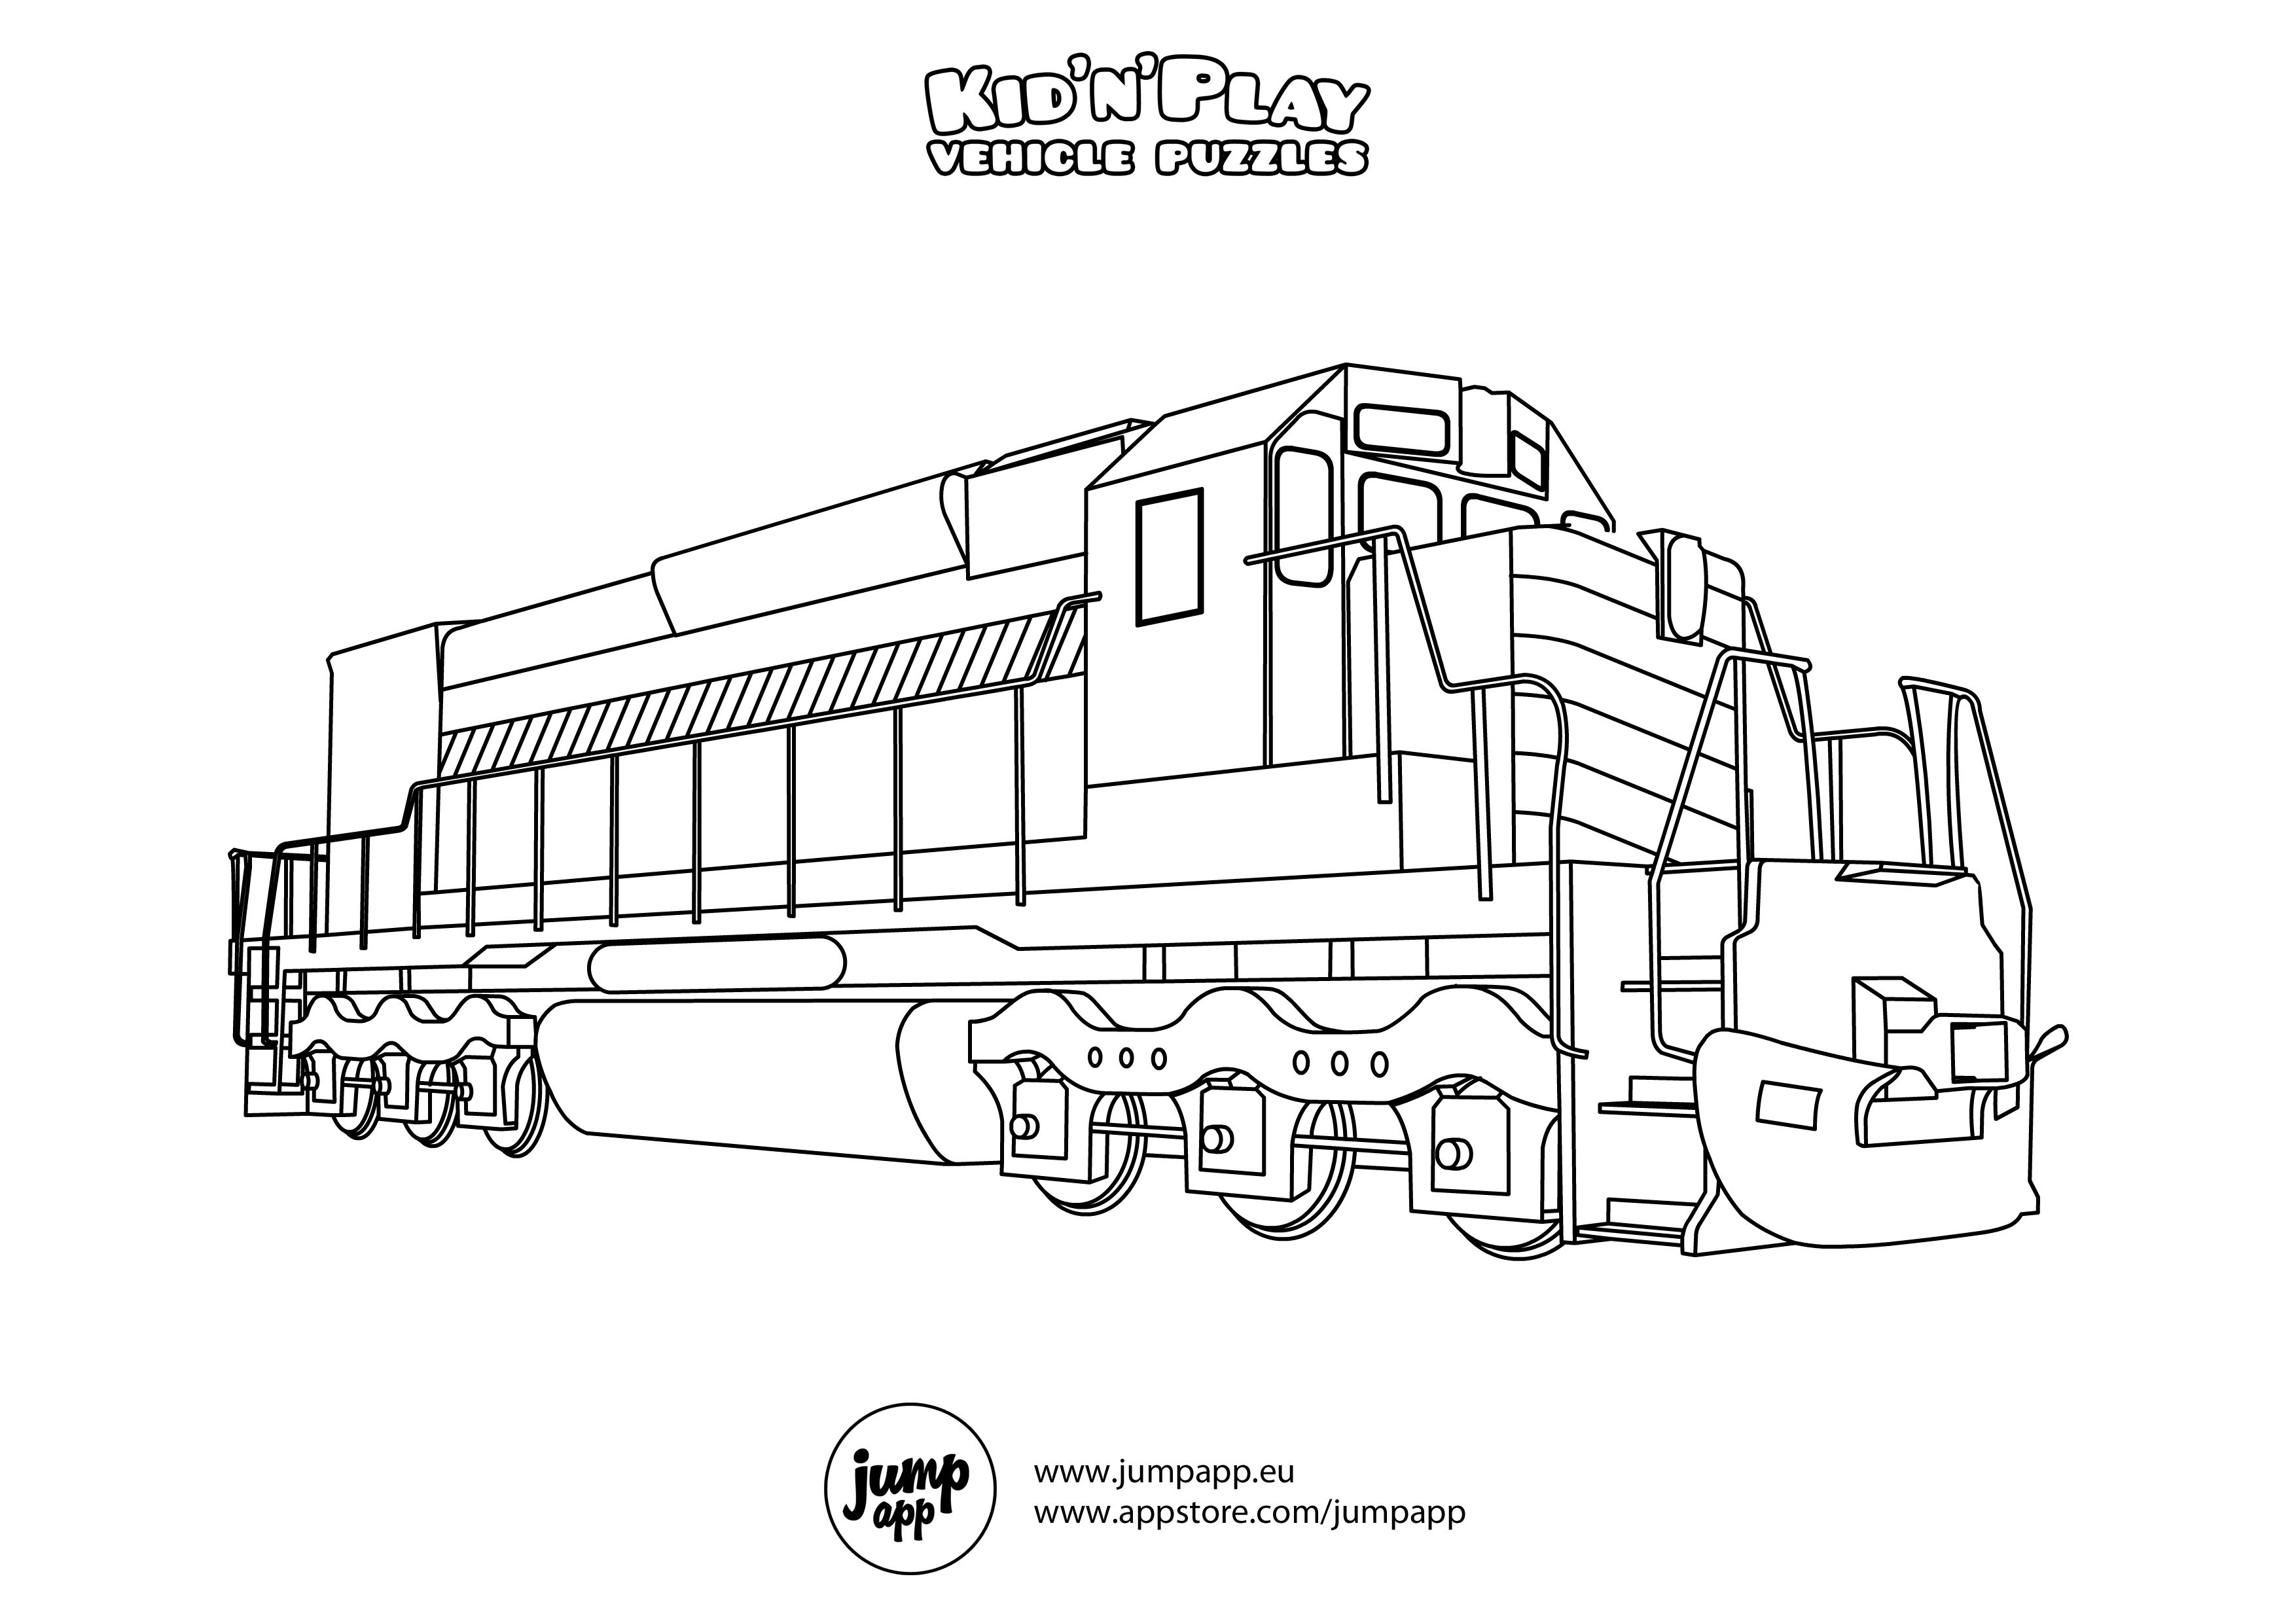 train engine coloring page free printable train coloring pages for kids cool2bkids page train coloring engine